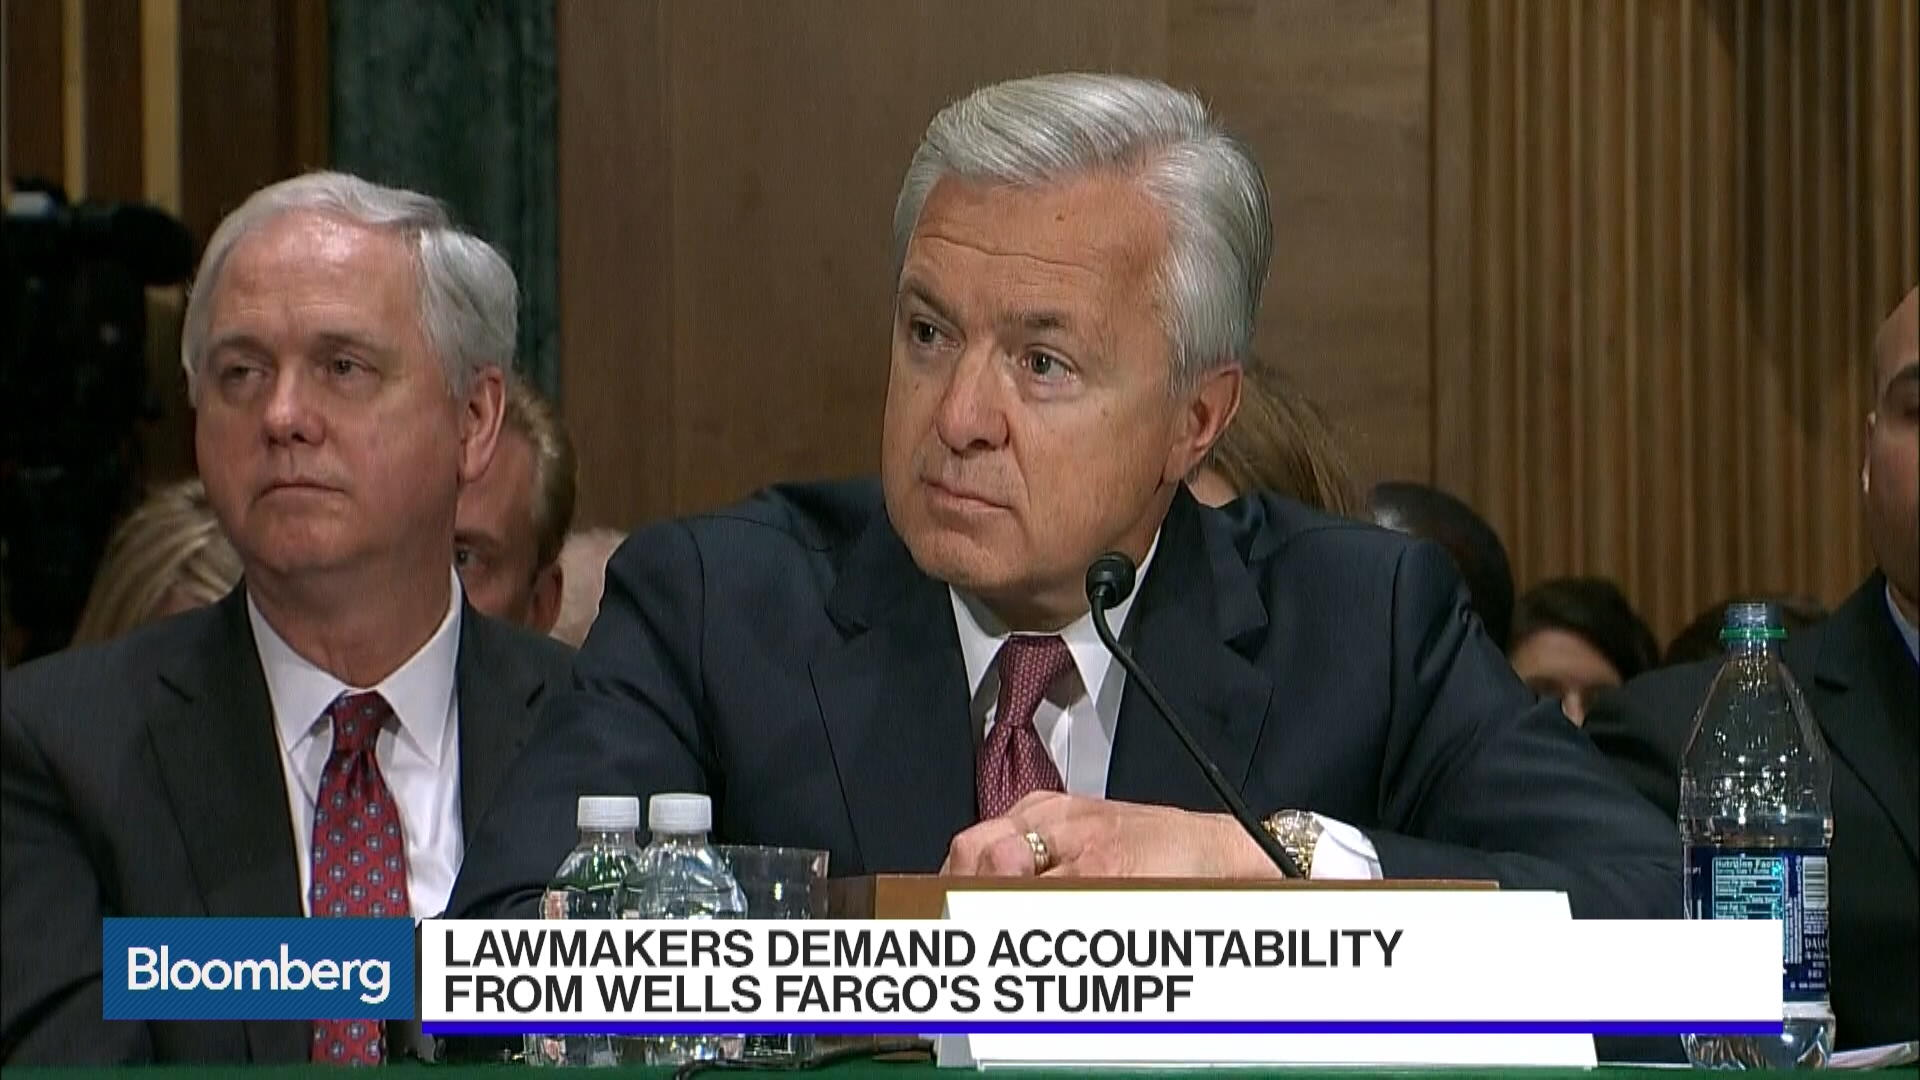 the man who inherit the mess at wells fargo bloomberg per nk